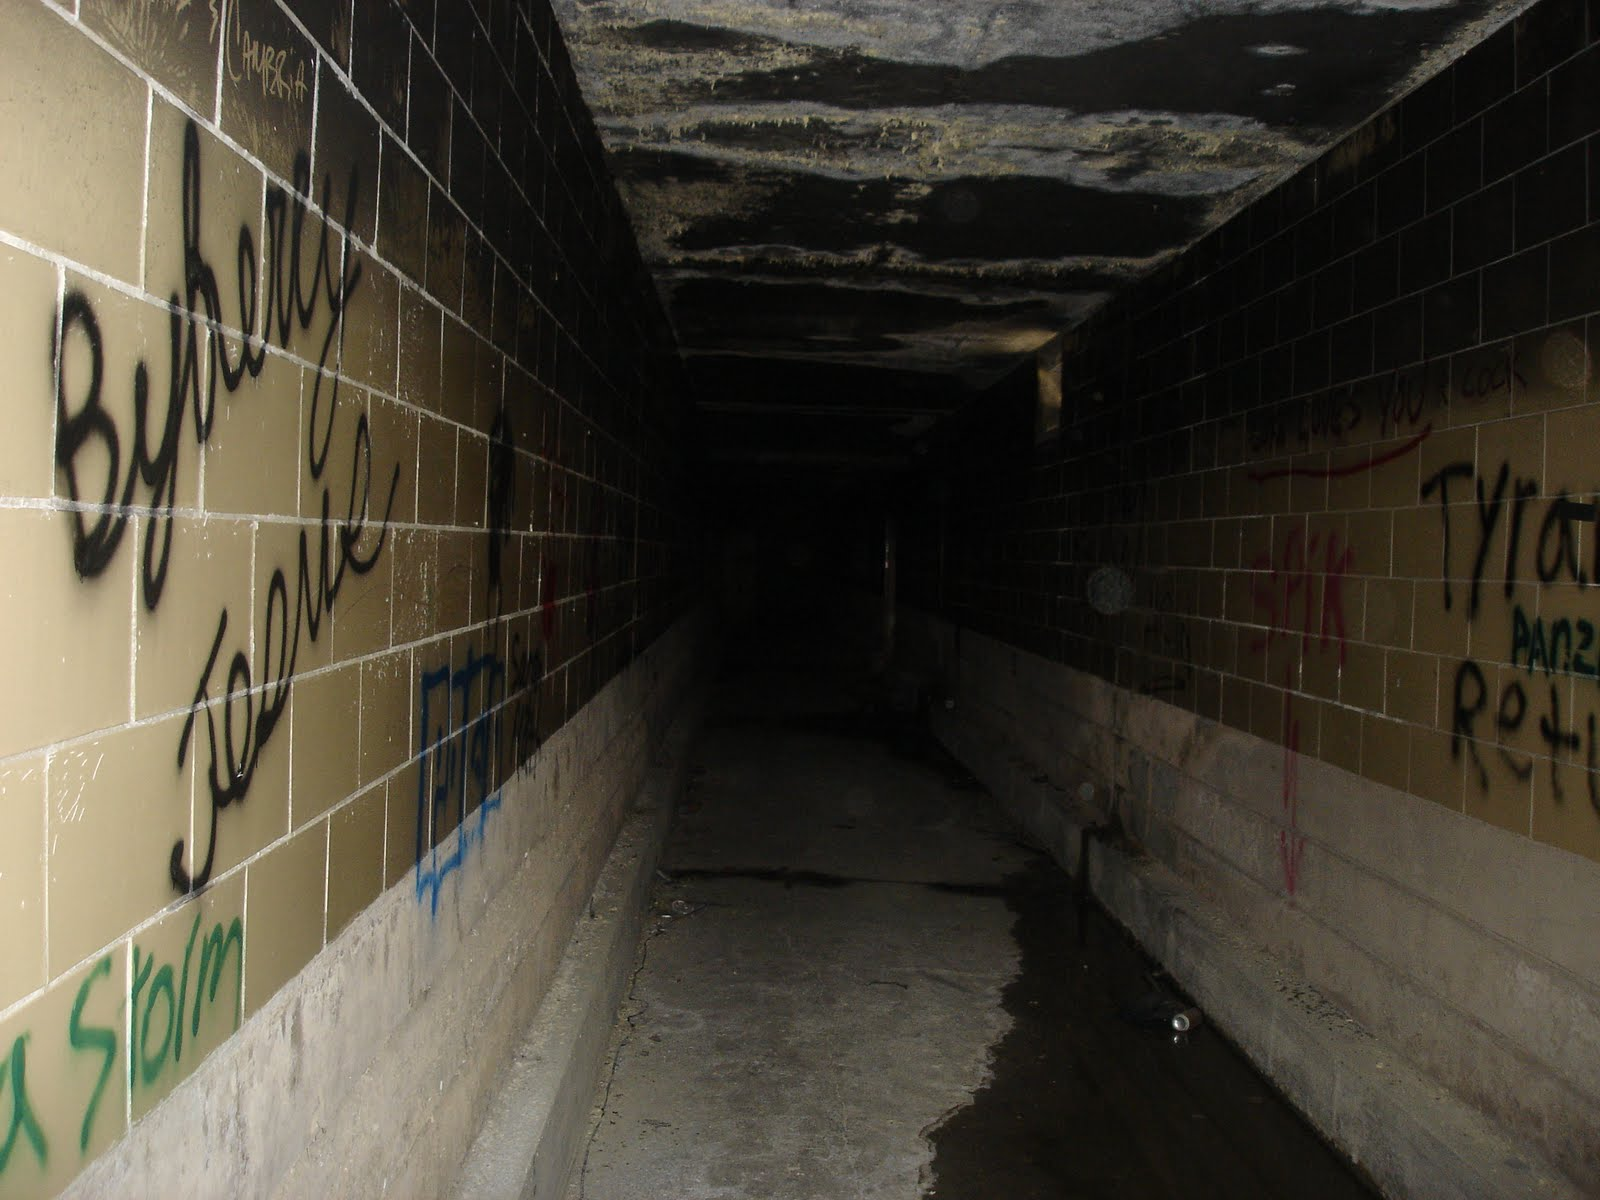 Abandoned underground tunnel at Pennhurst.